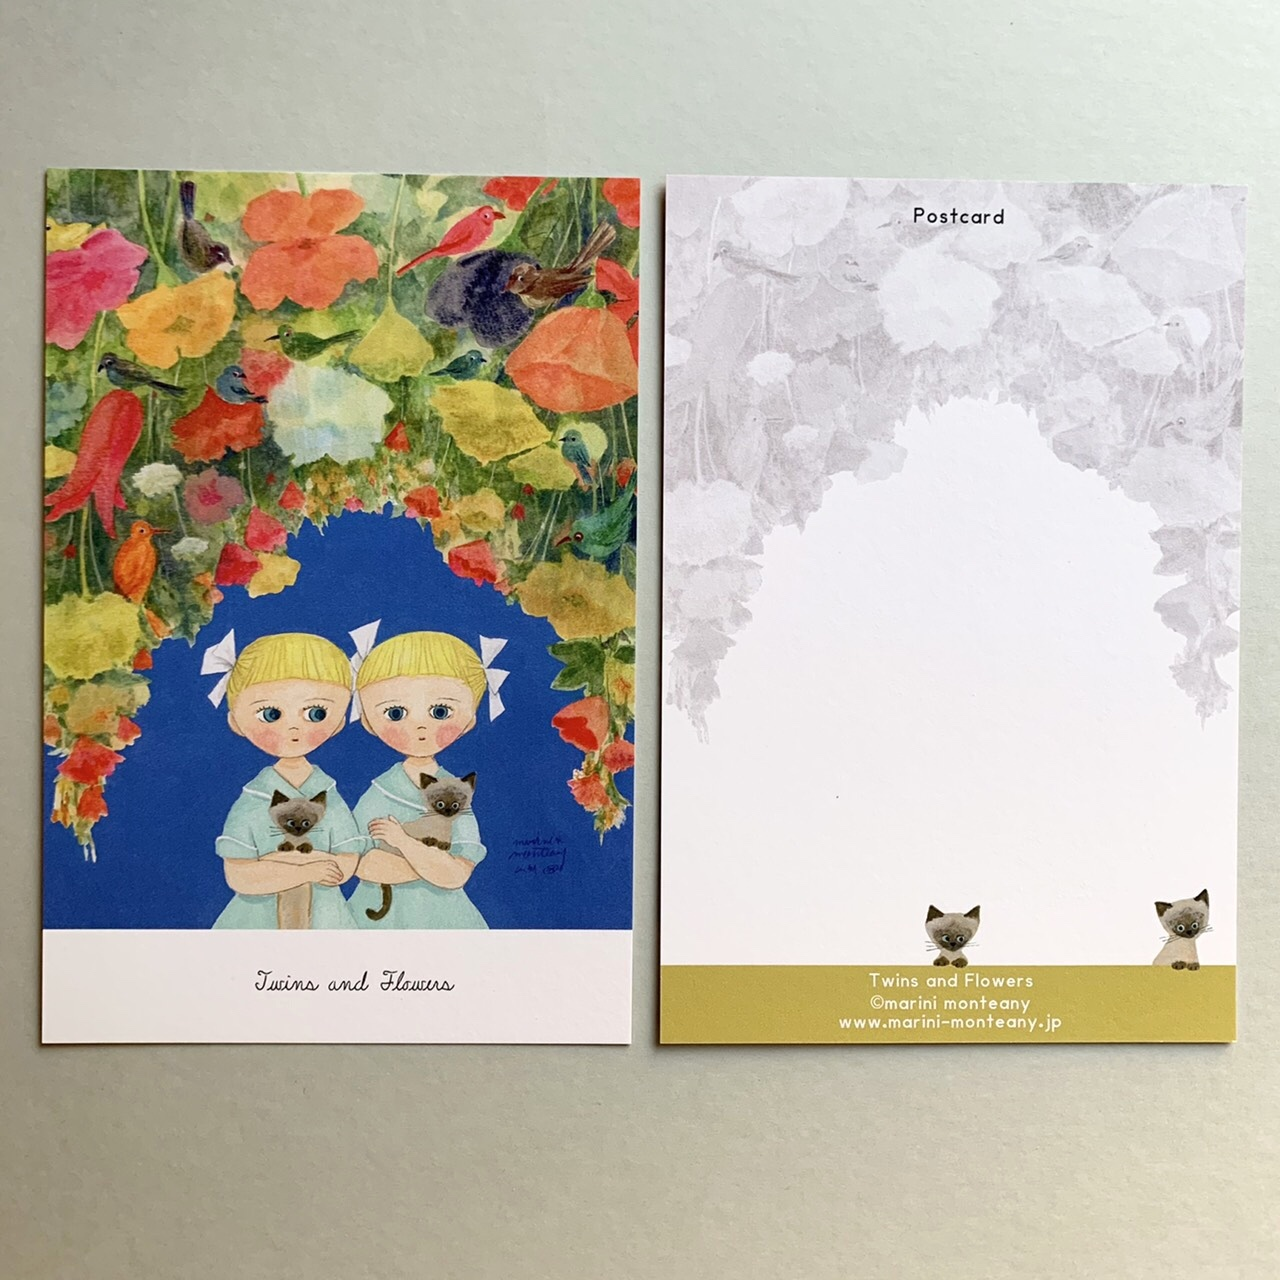 POST CARD「Twins & Flowers」no.181